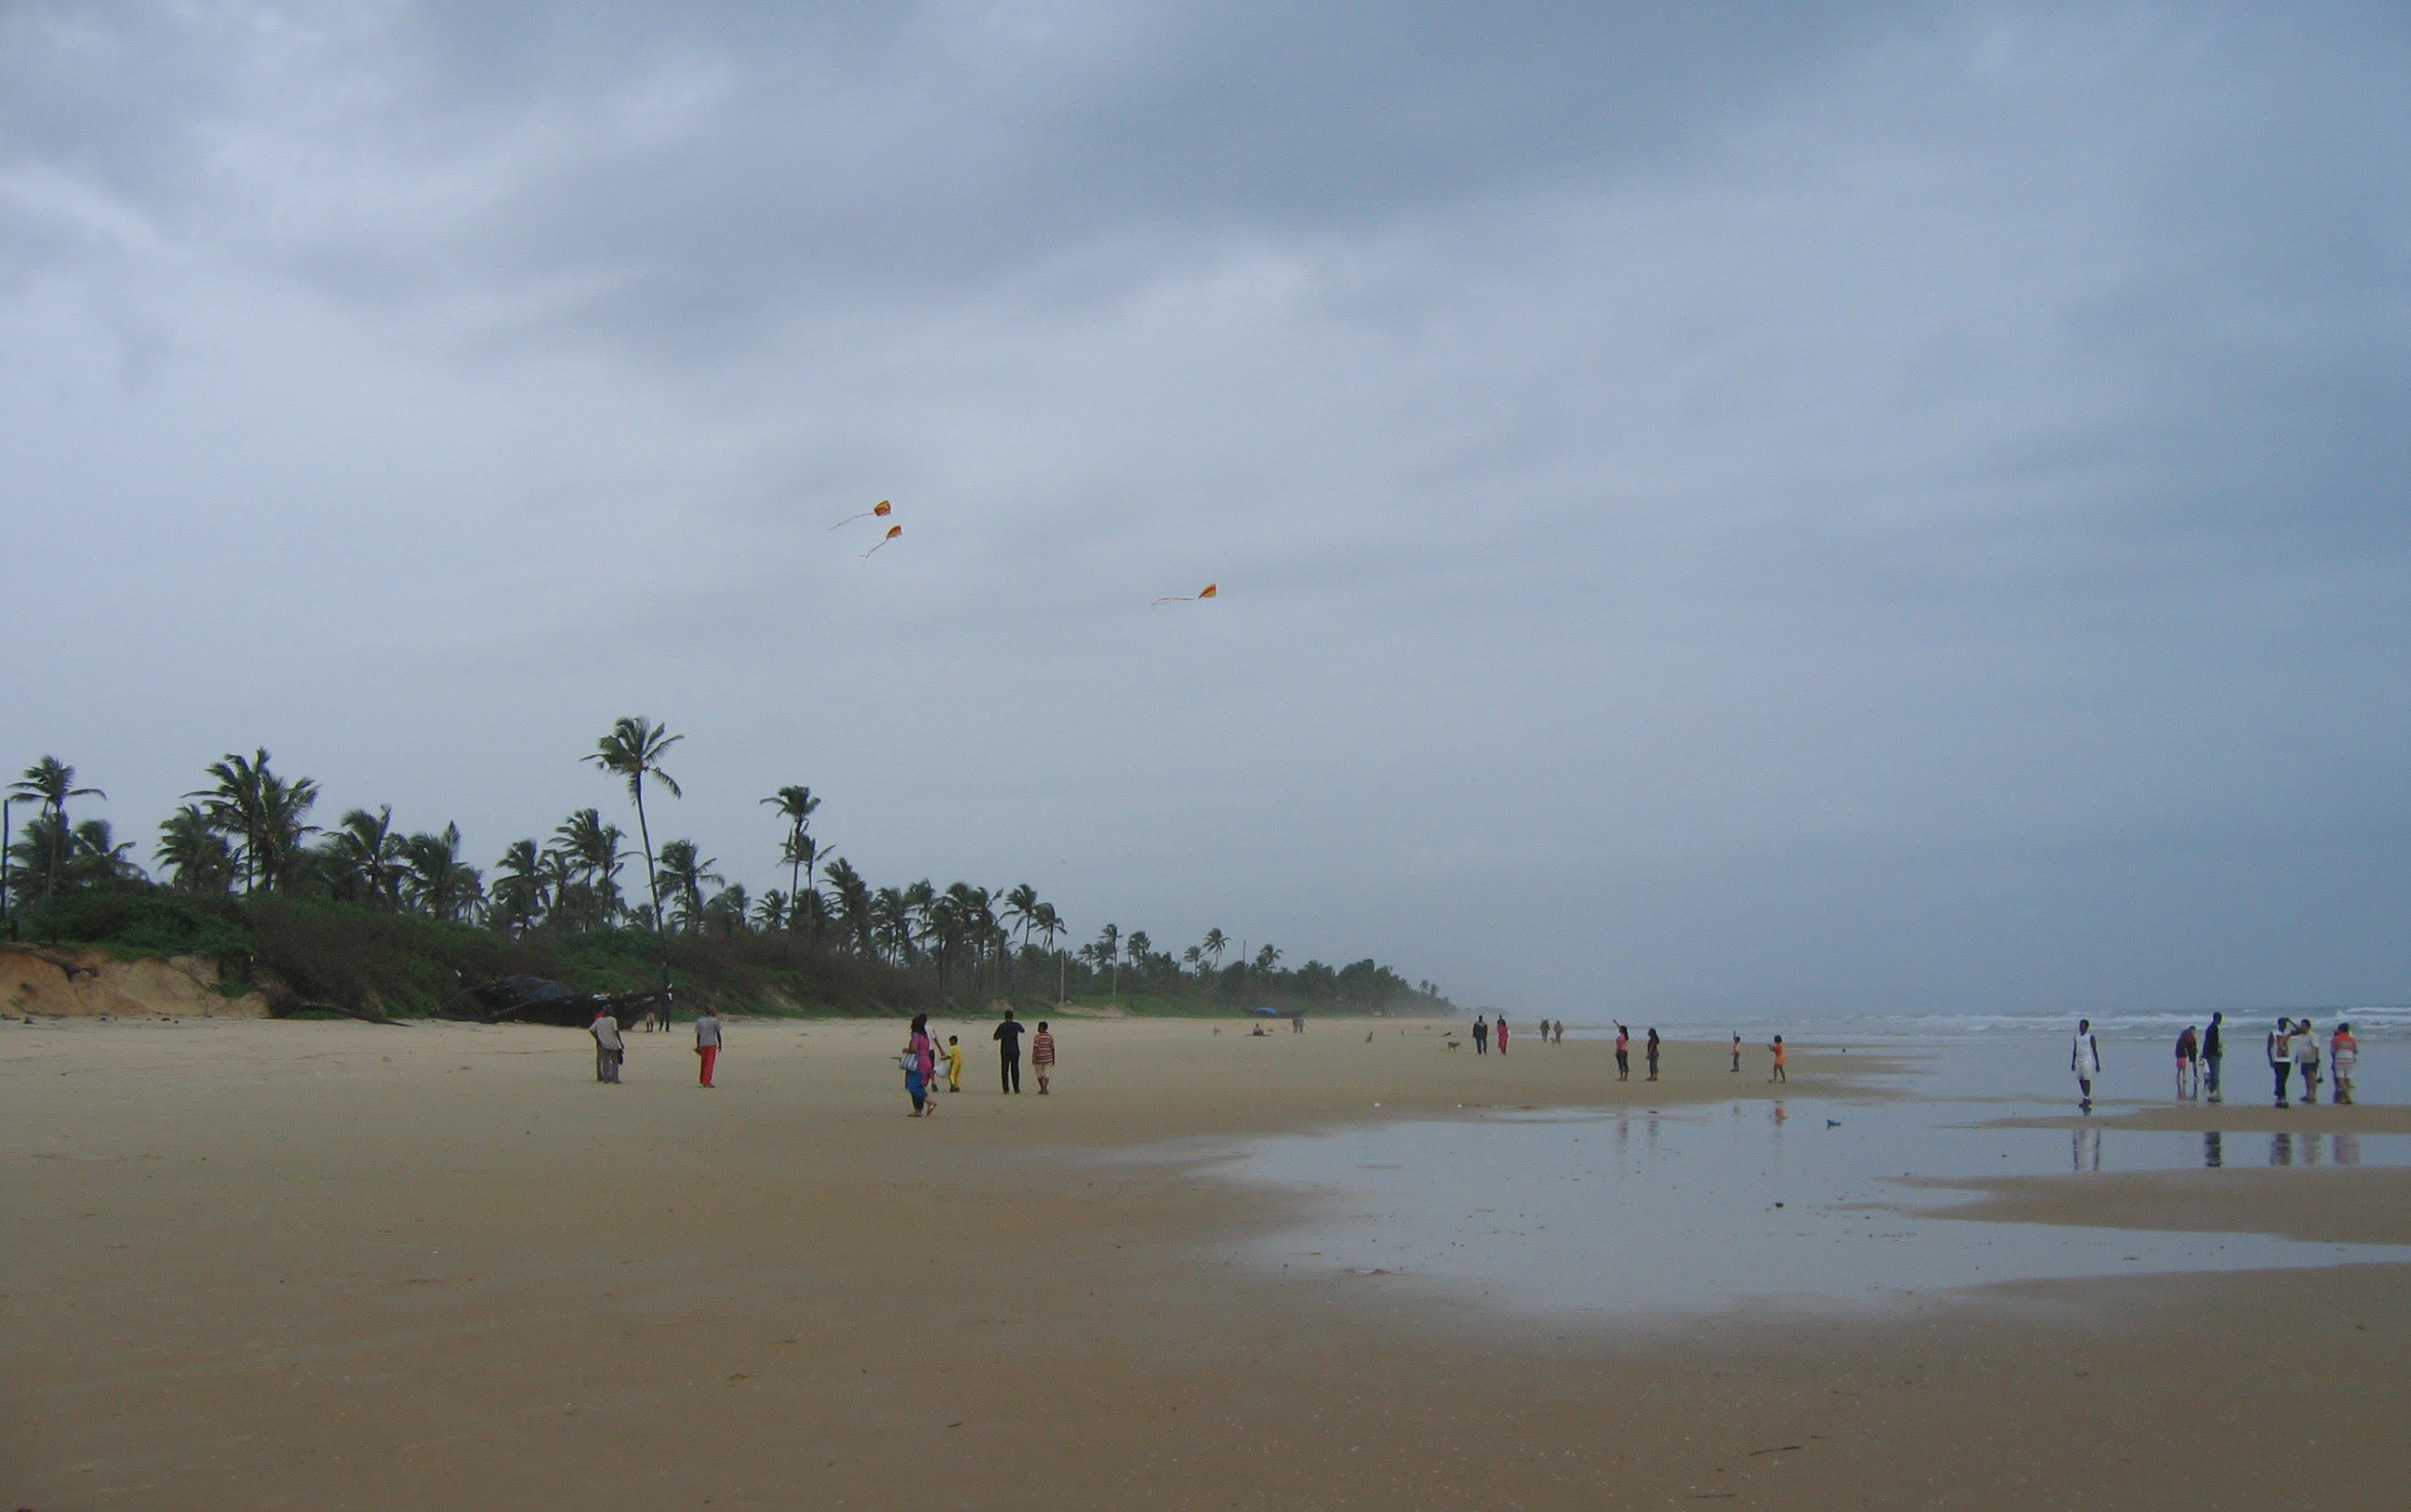 Kegdole Beach Goa India Location Map,Location Map of Kegdole Beach Goa India,Kegdole Beach Goa India accommodation destinations attractions hotels map reviews photos pictures